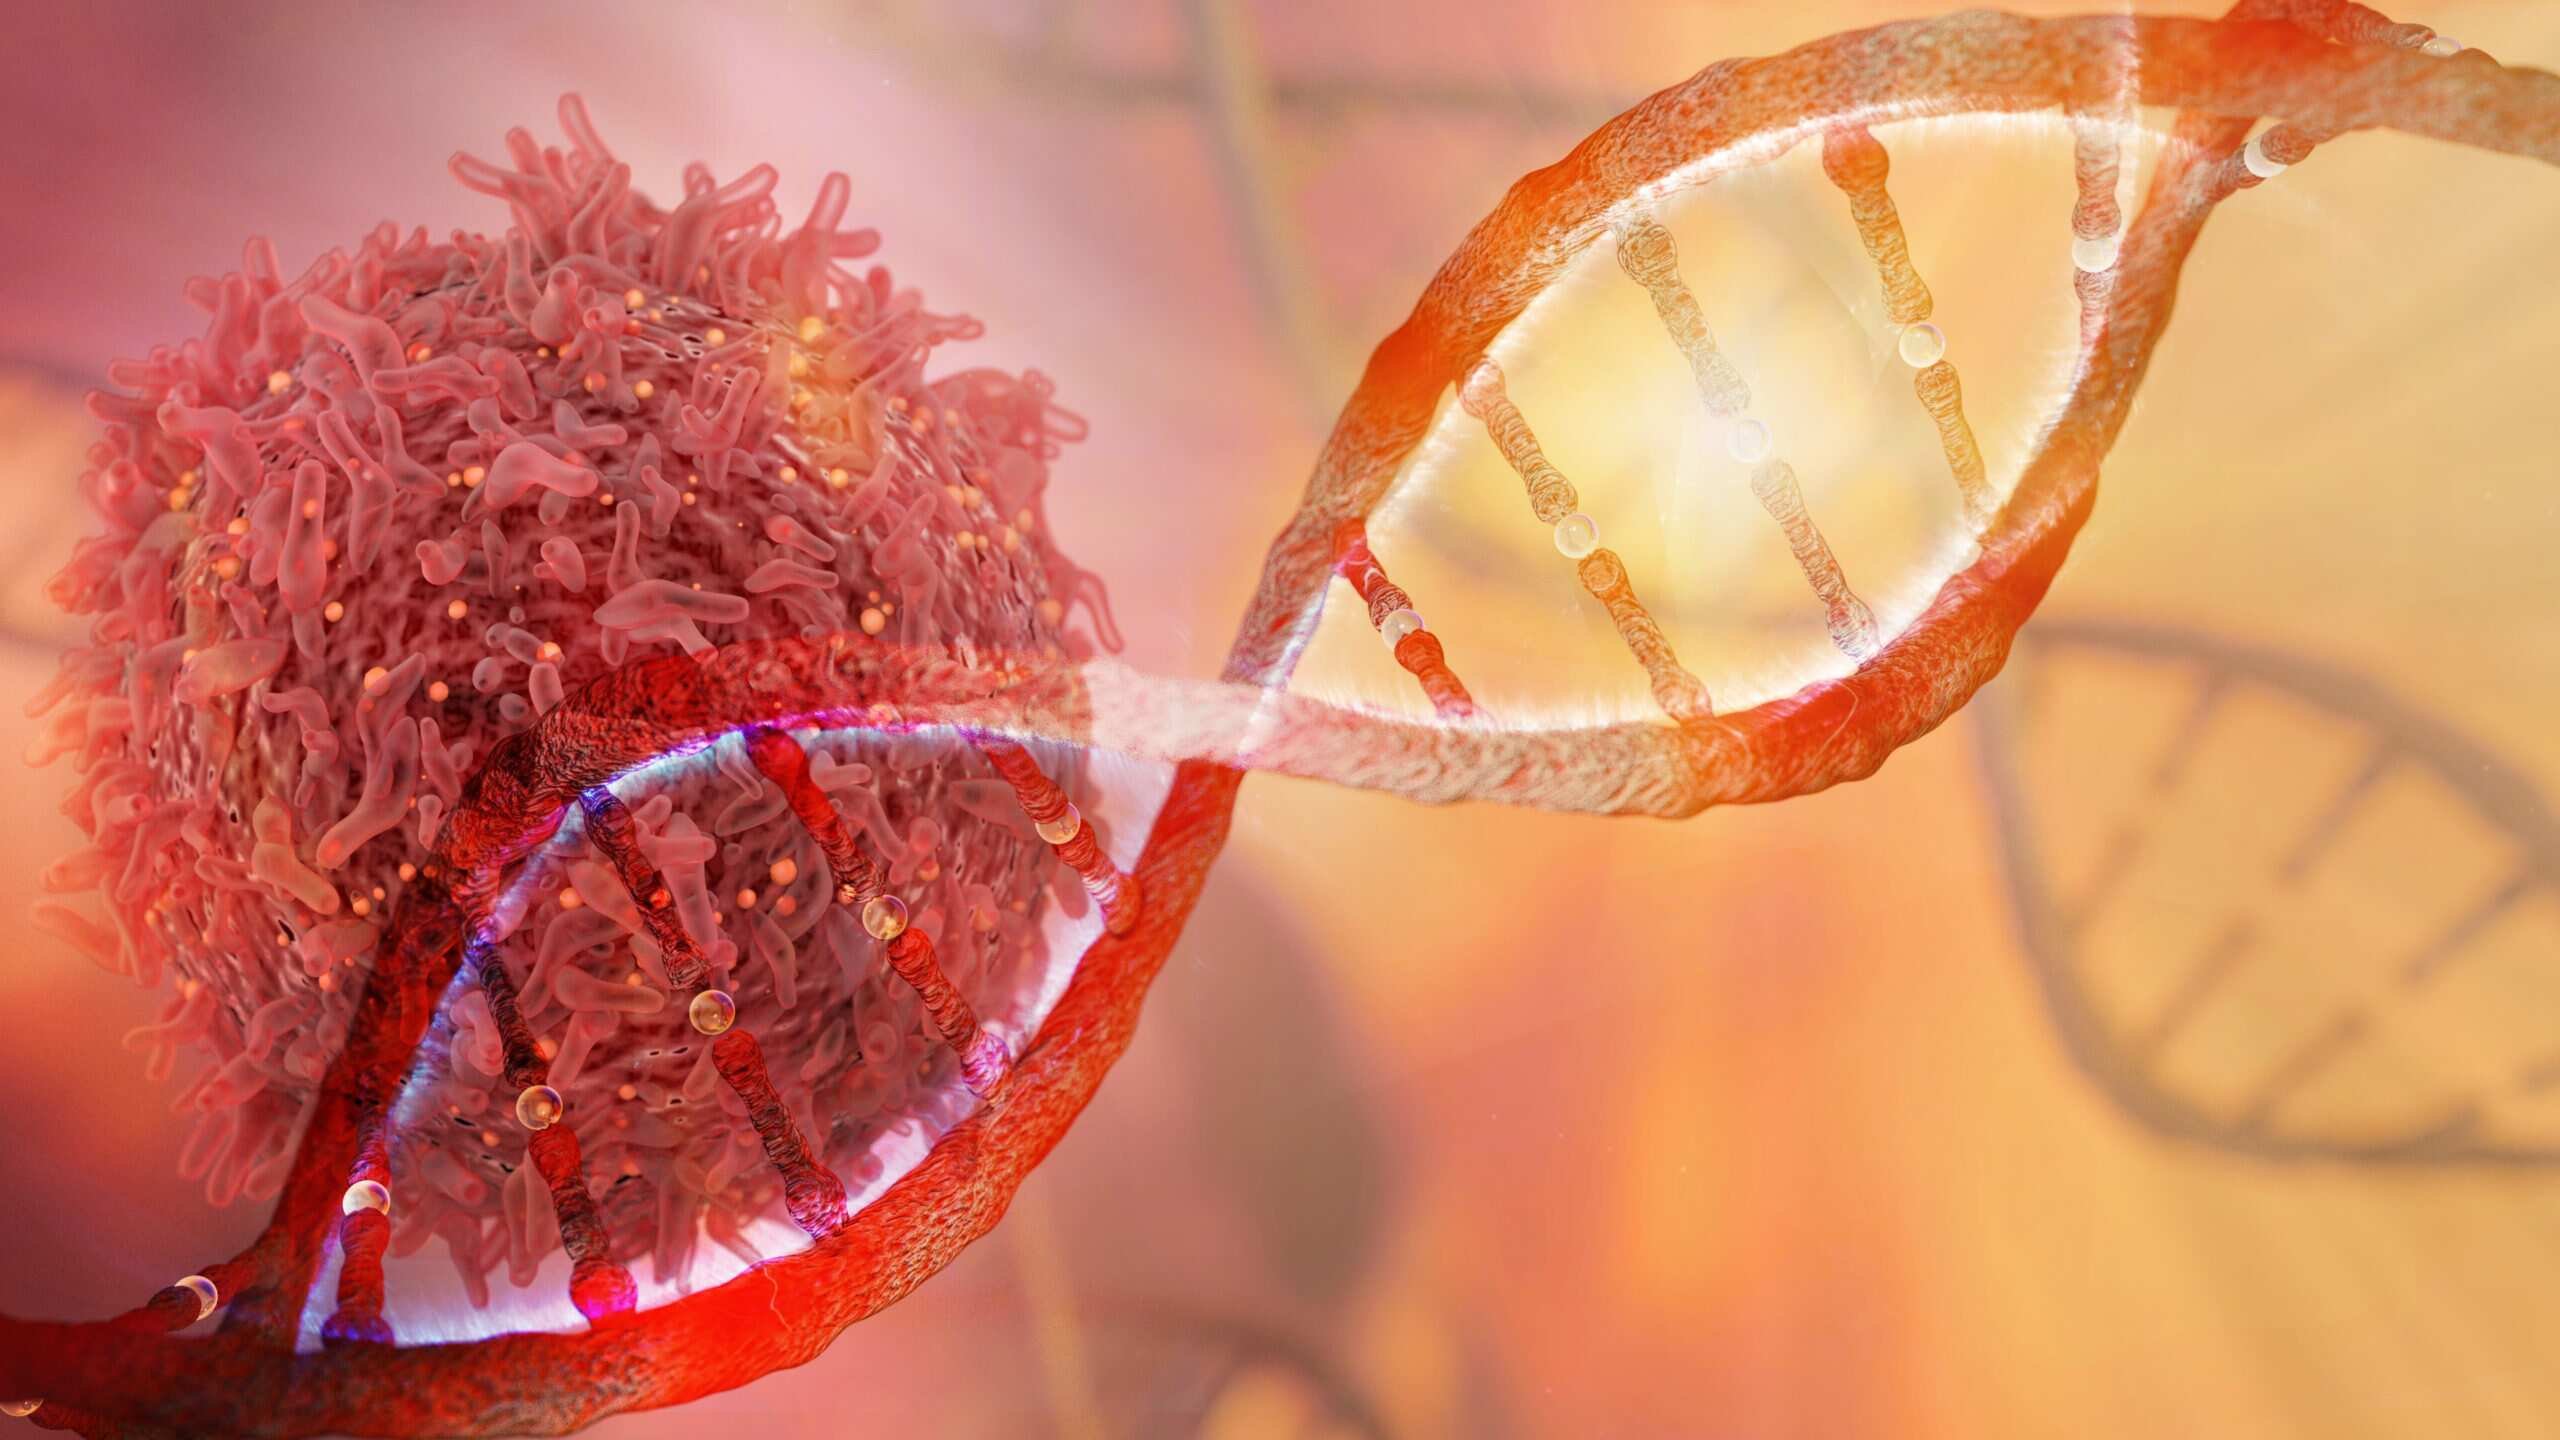 A graphic representing immunooncology research shows a cell and a double helix of DNA